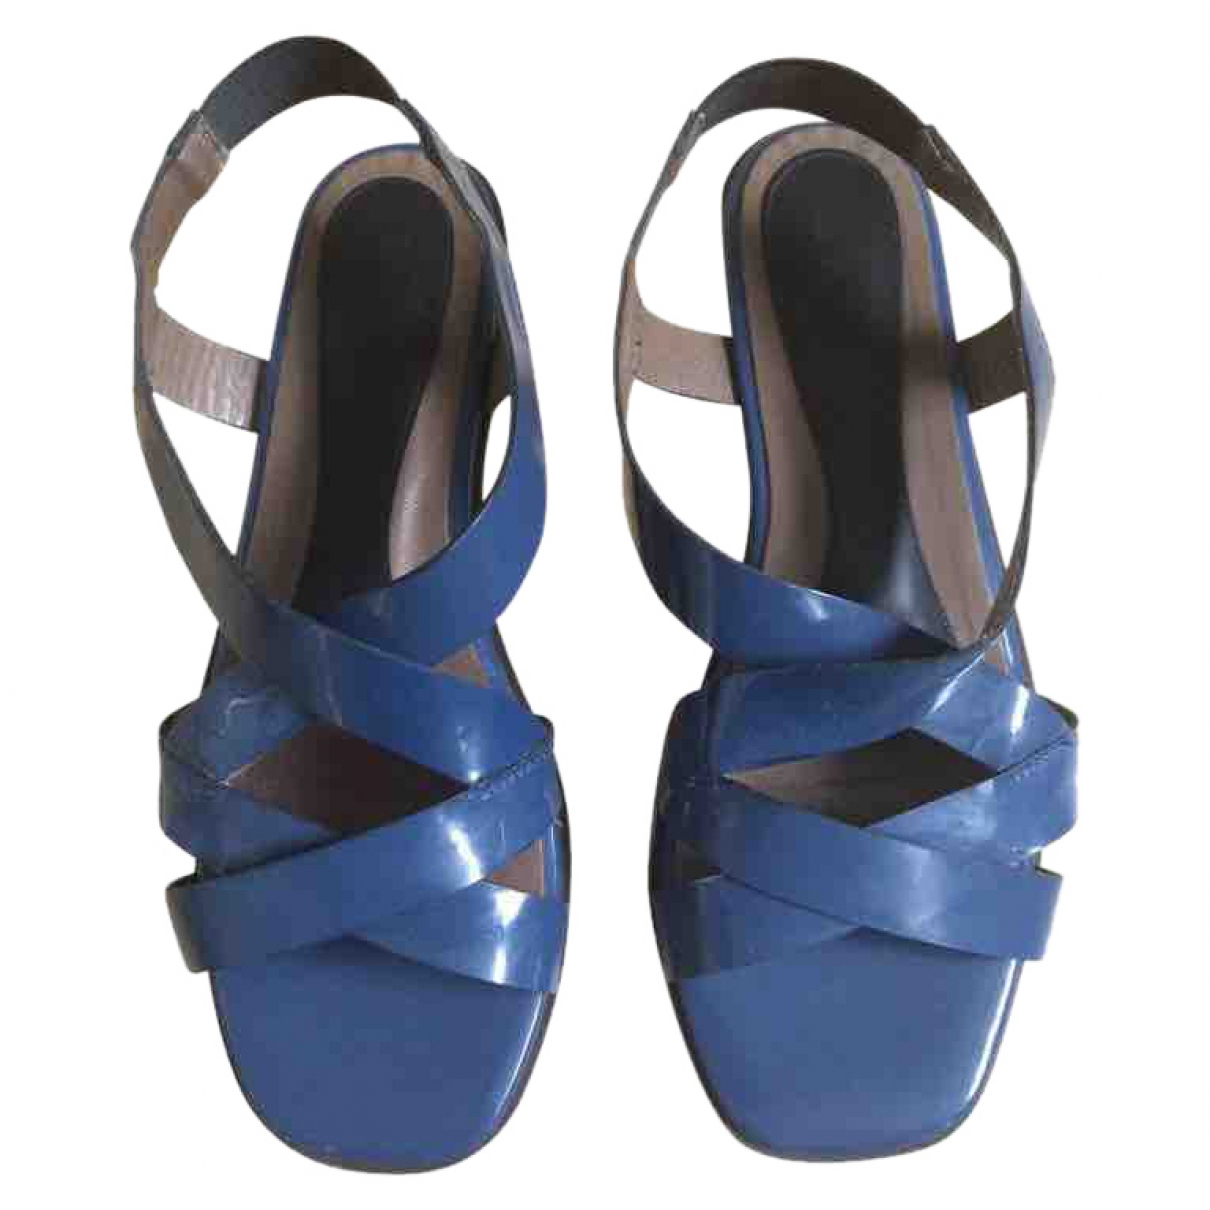 Marni \N Blue Patent leather Sandals for Women 37.5 EU